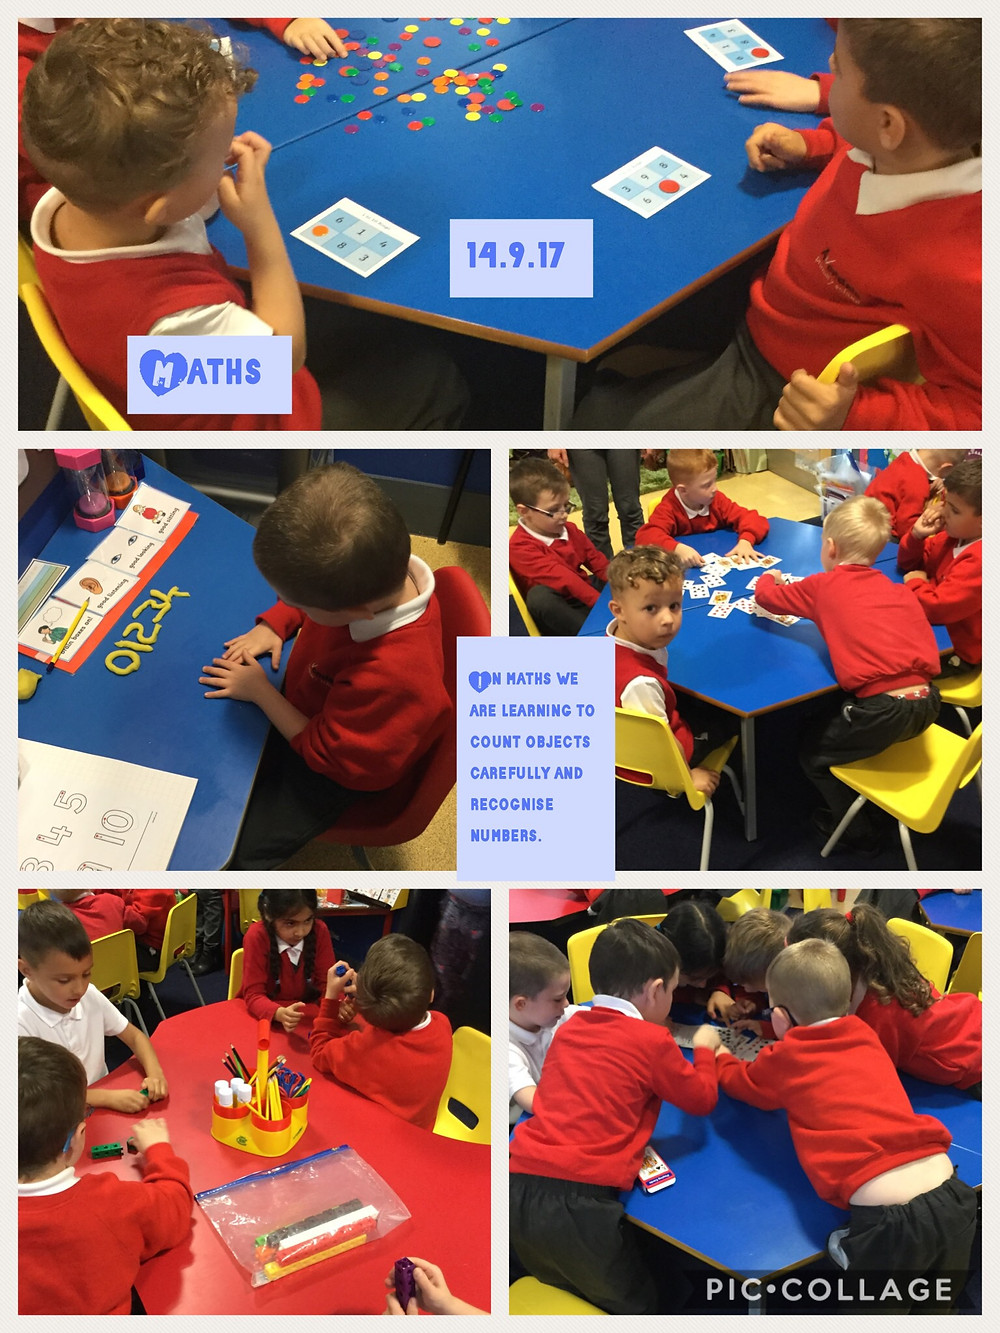 We have been learning to count objects carefully and recognise numbers.